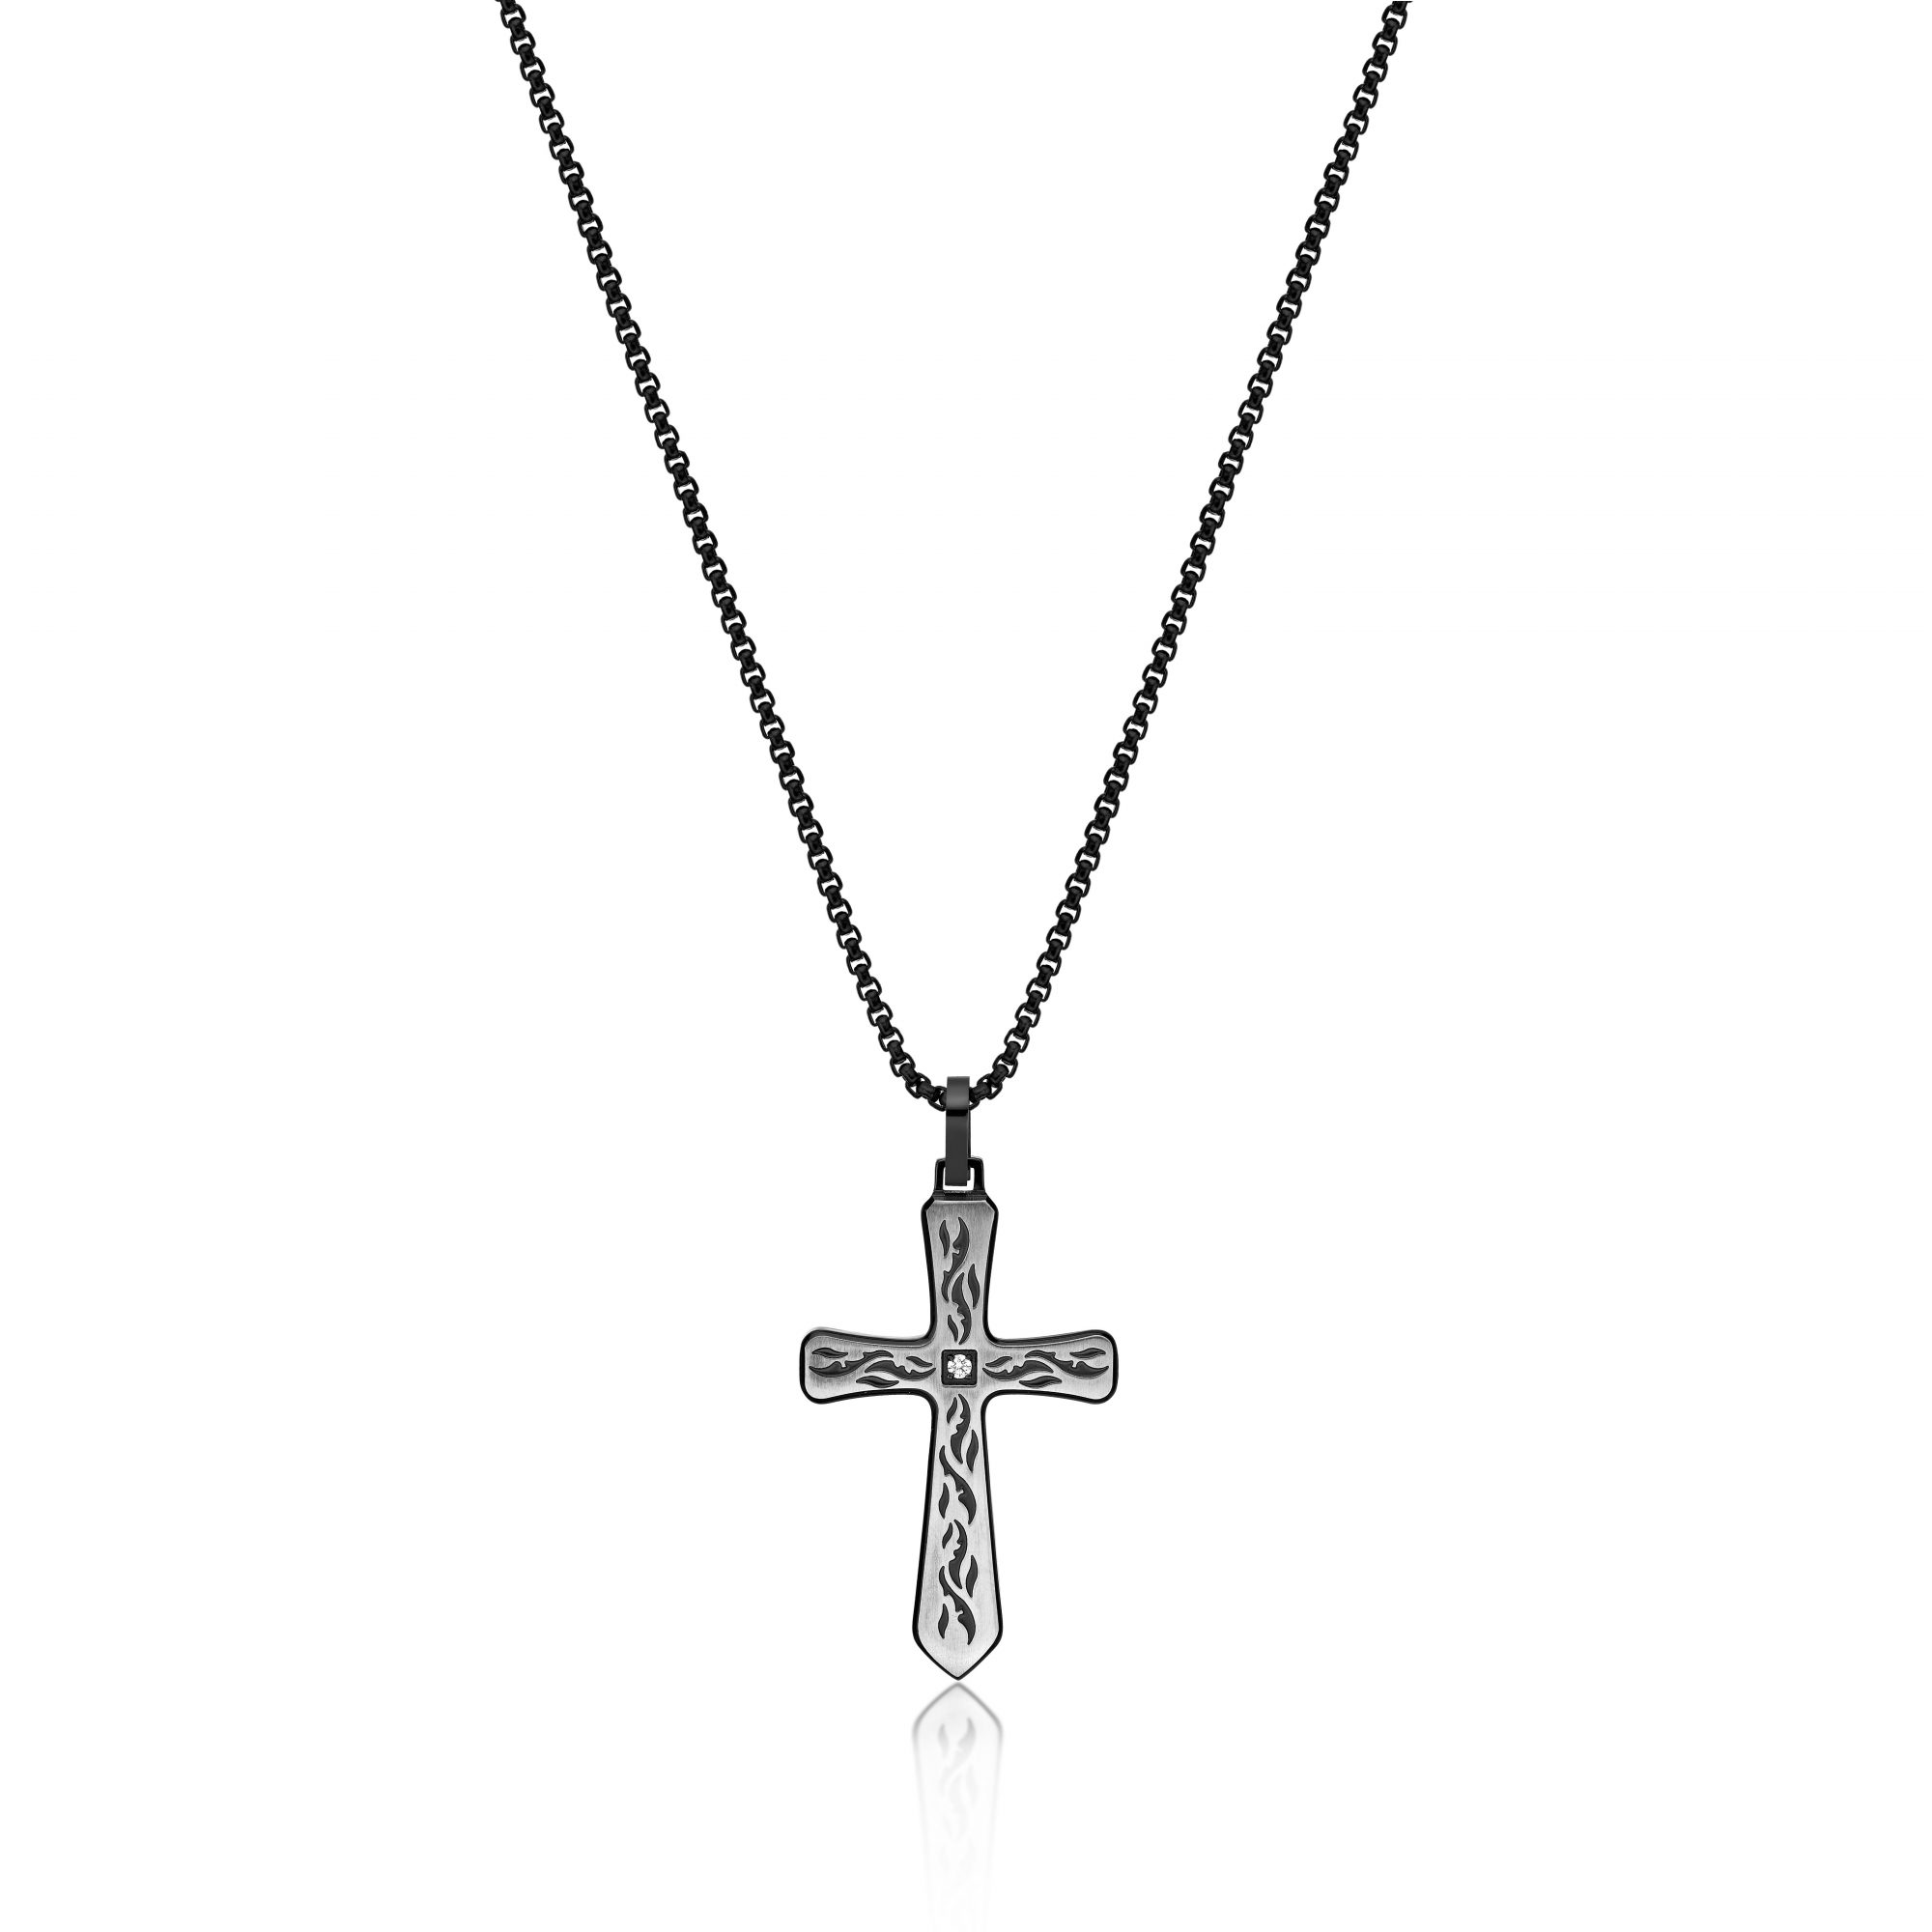 0.01 Round Cubic Zirconia Black Ion Plated Stainless Steel Etched Cross Pendant - 24 Inch Box Chain